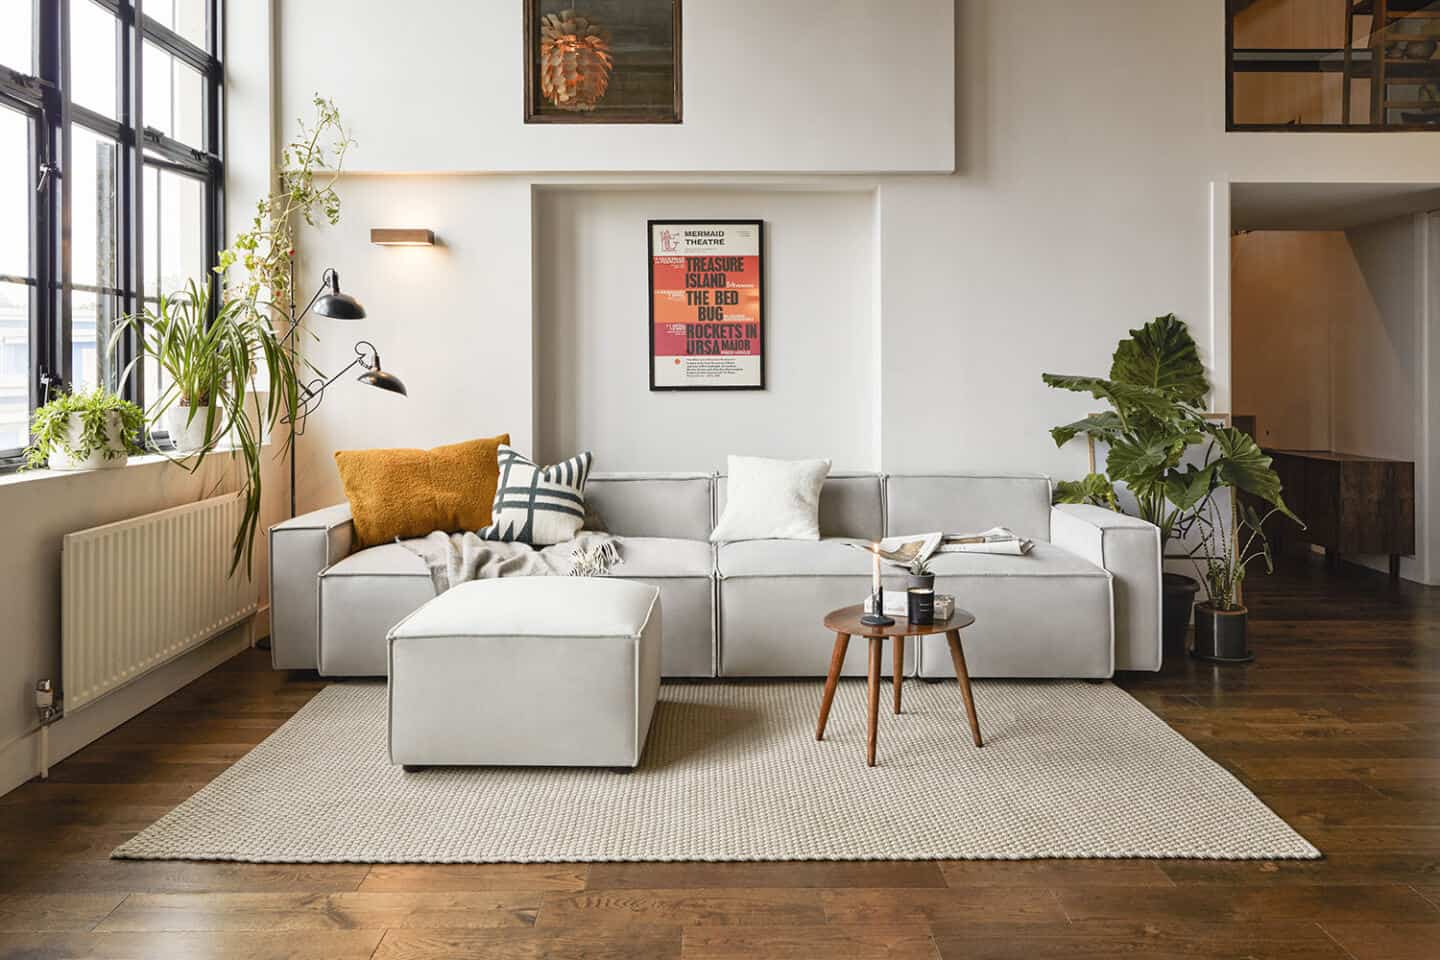 A grey sofa from Swyft Home on an oatmeal coloured rug, positioned next to a window and flanked by plants